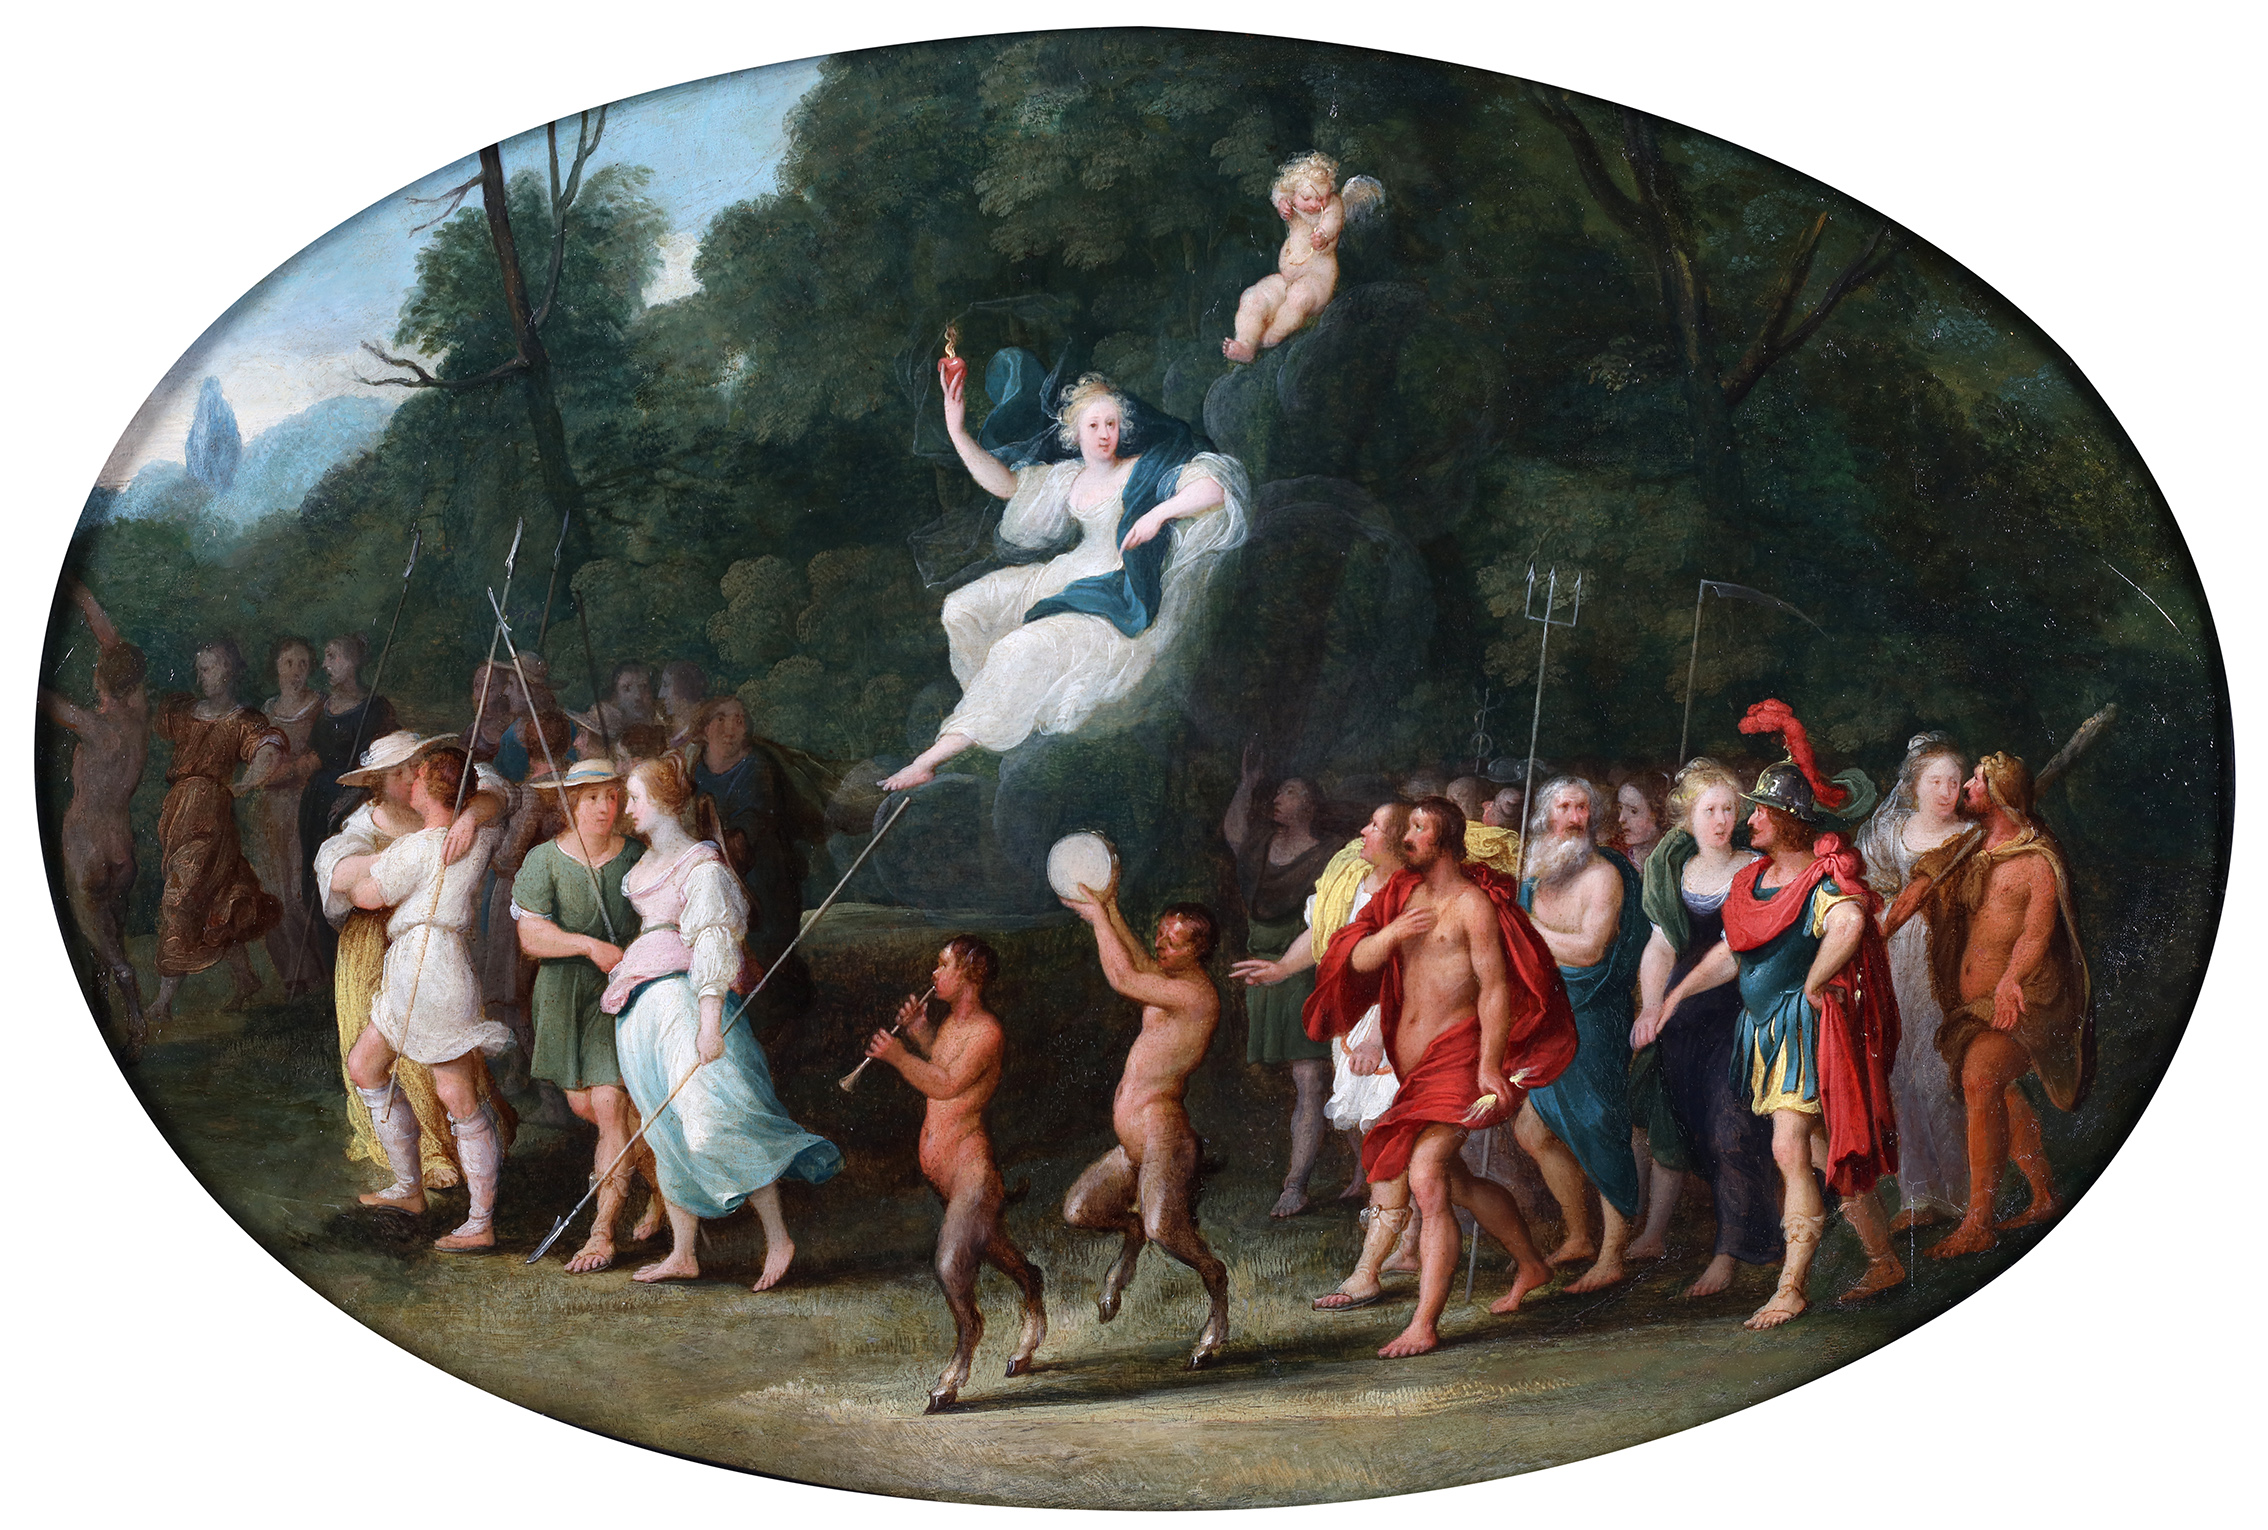 Venus and Cupid, surrounded by couples, feasting satyrs and the Olympic gods